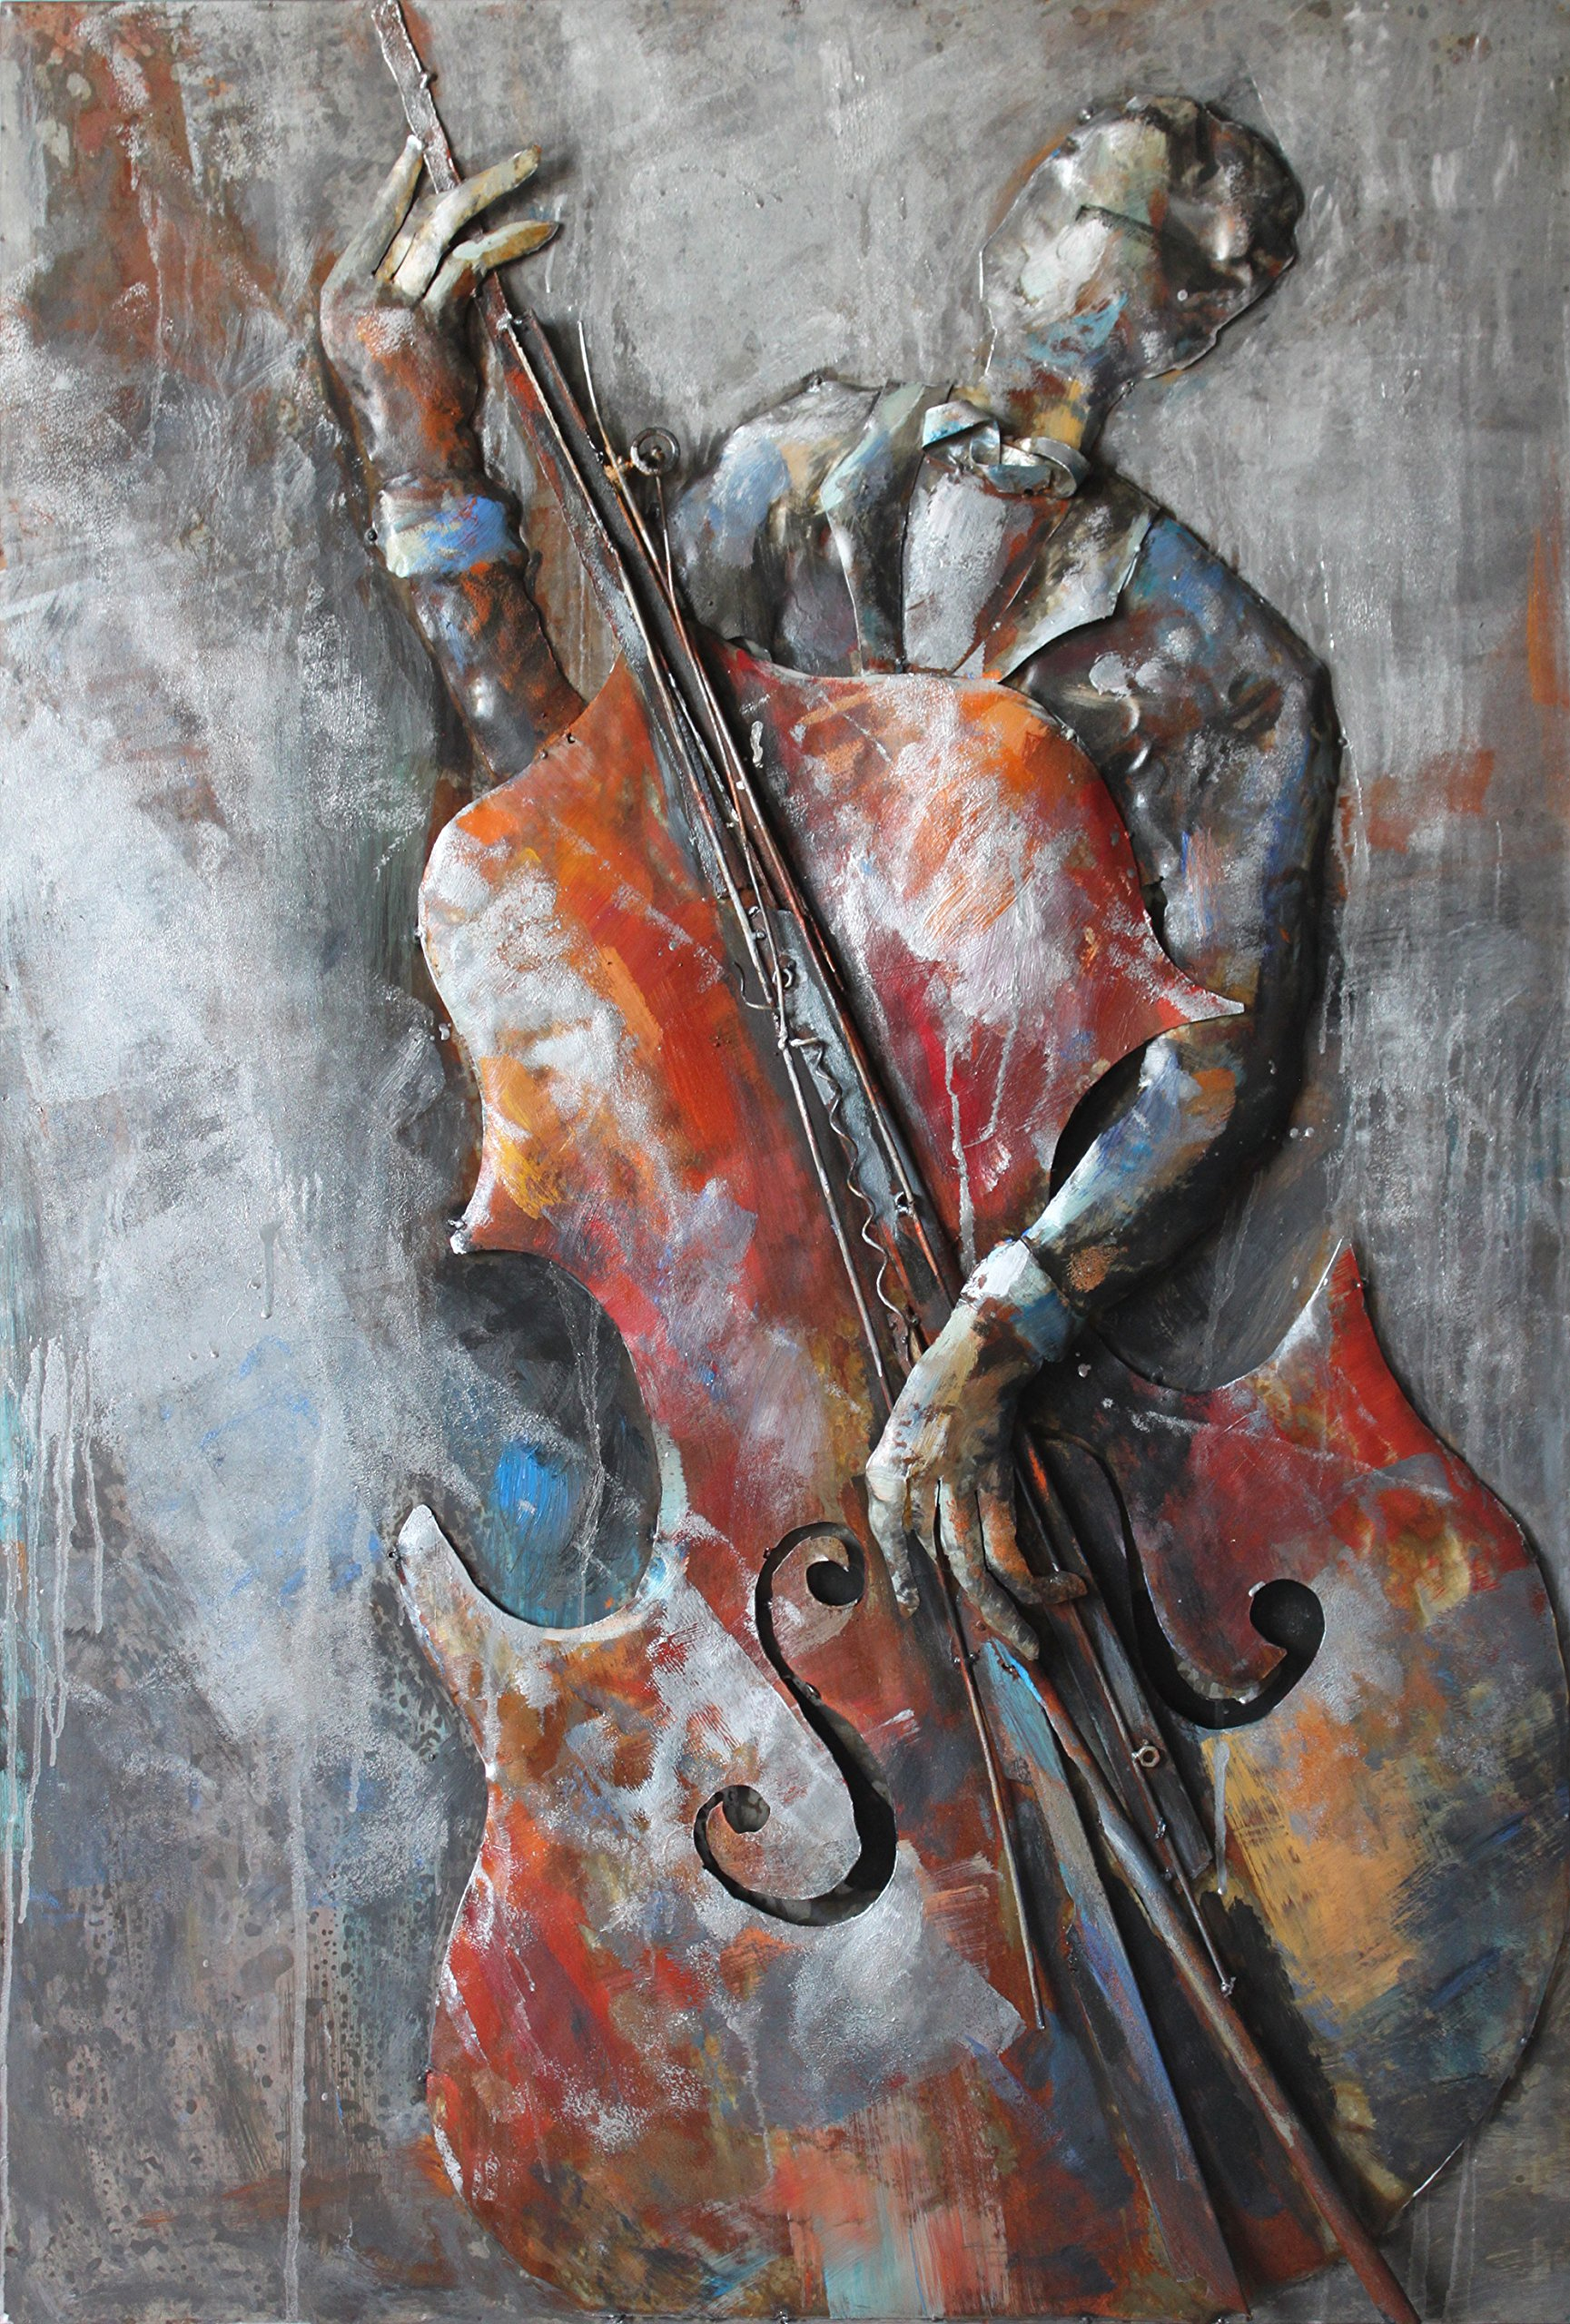 Empire Art Direct ''The Bassist'' Mixed Media Hand Painted Iron Wall Sculpture by Primo by Empire Art Direct